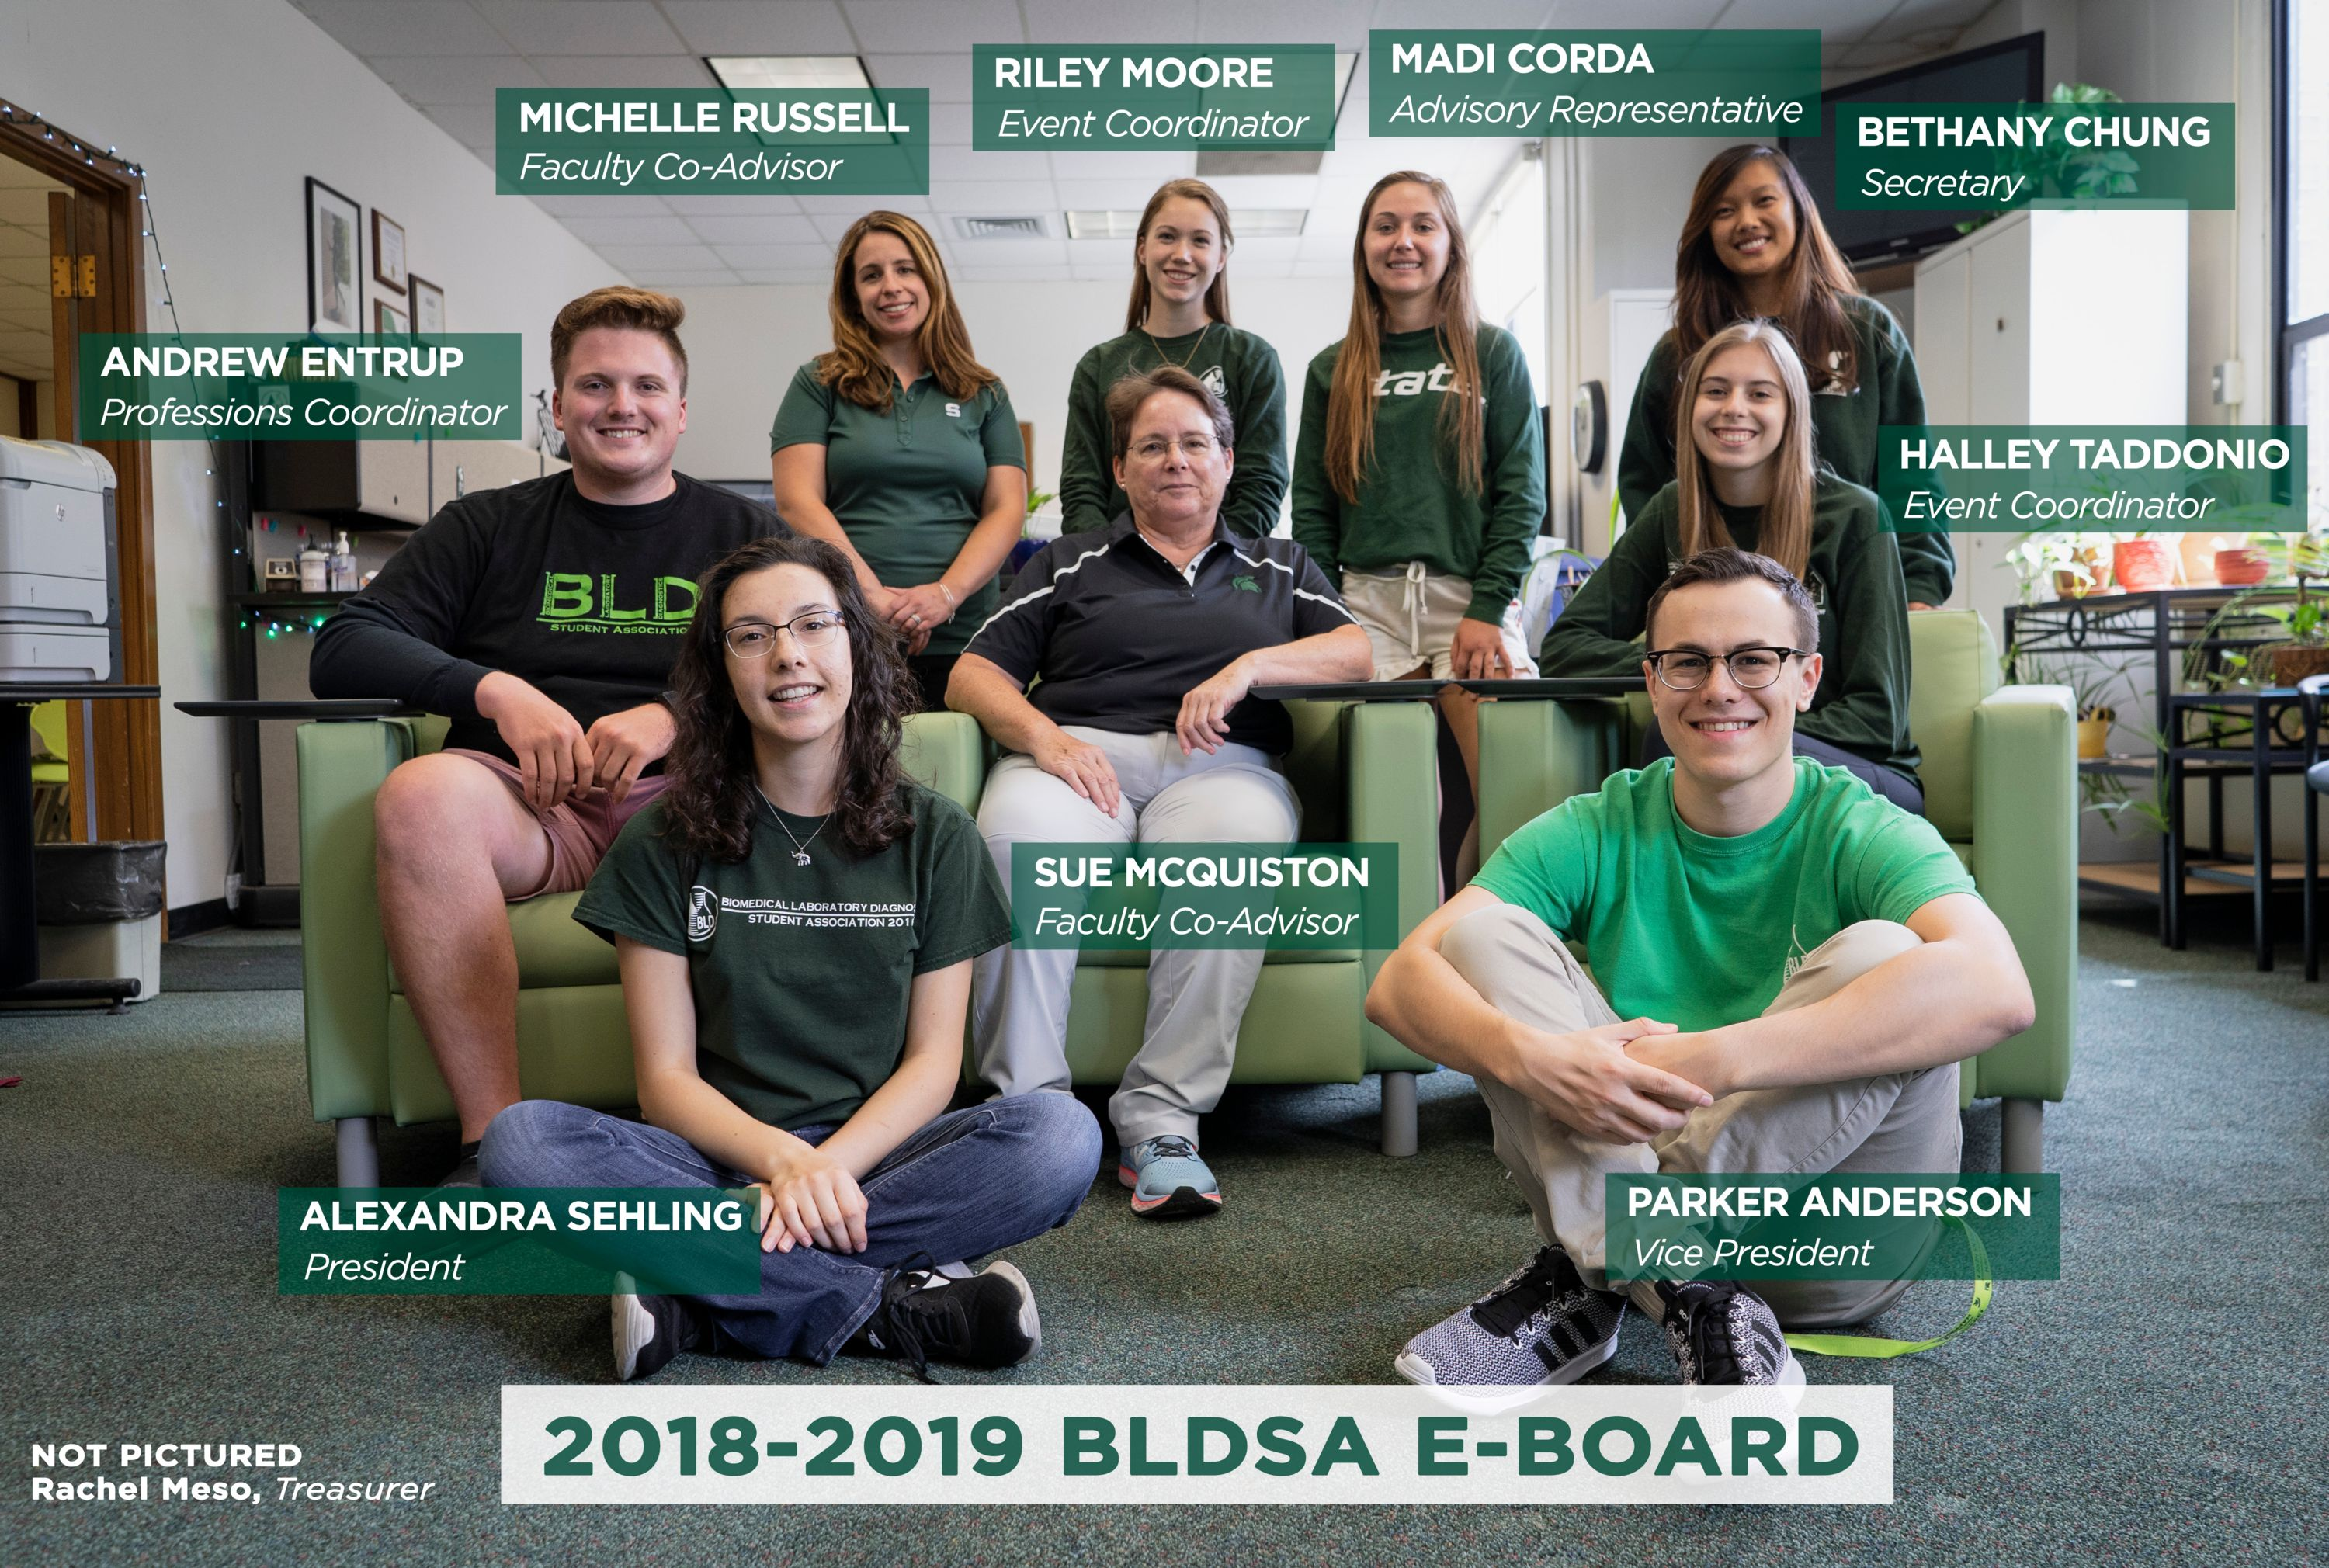 Photo of the BLD Student Association